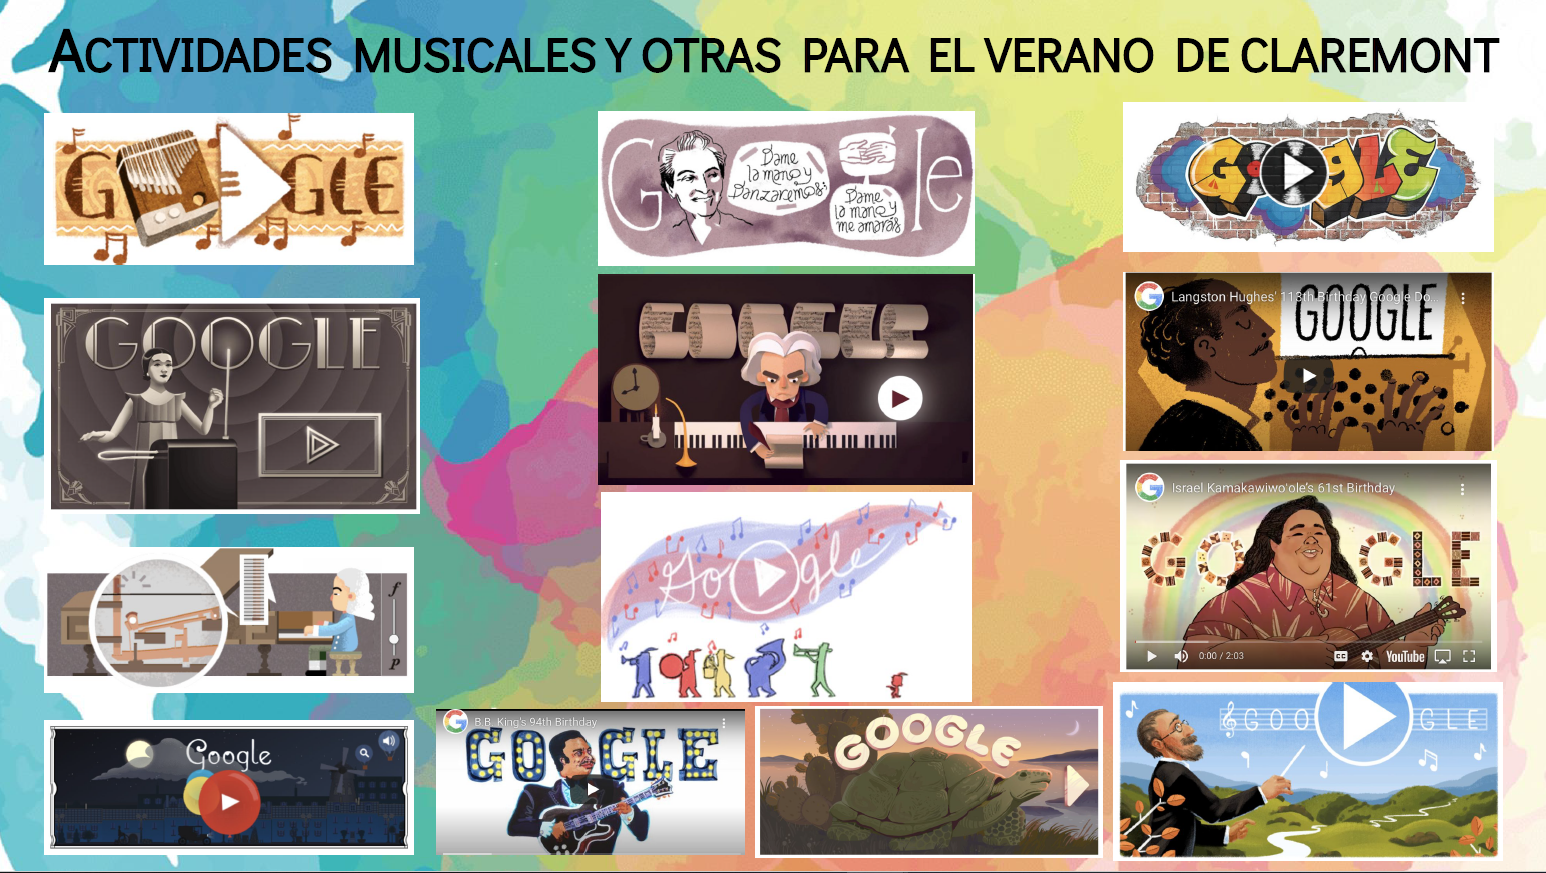 screen captures of Google music doodles against a colorful background